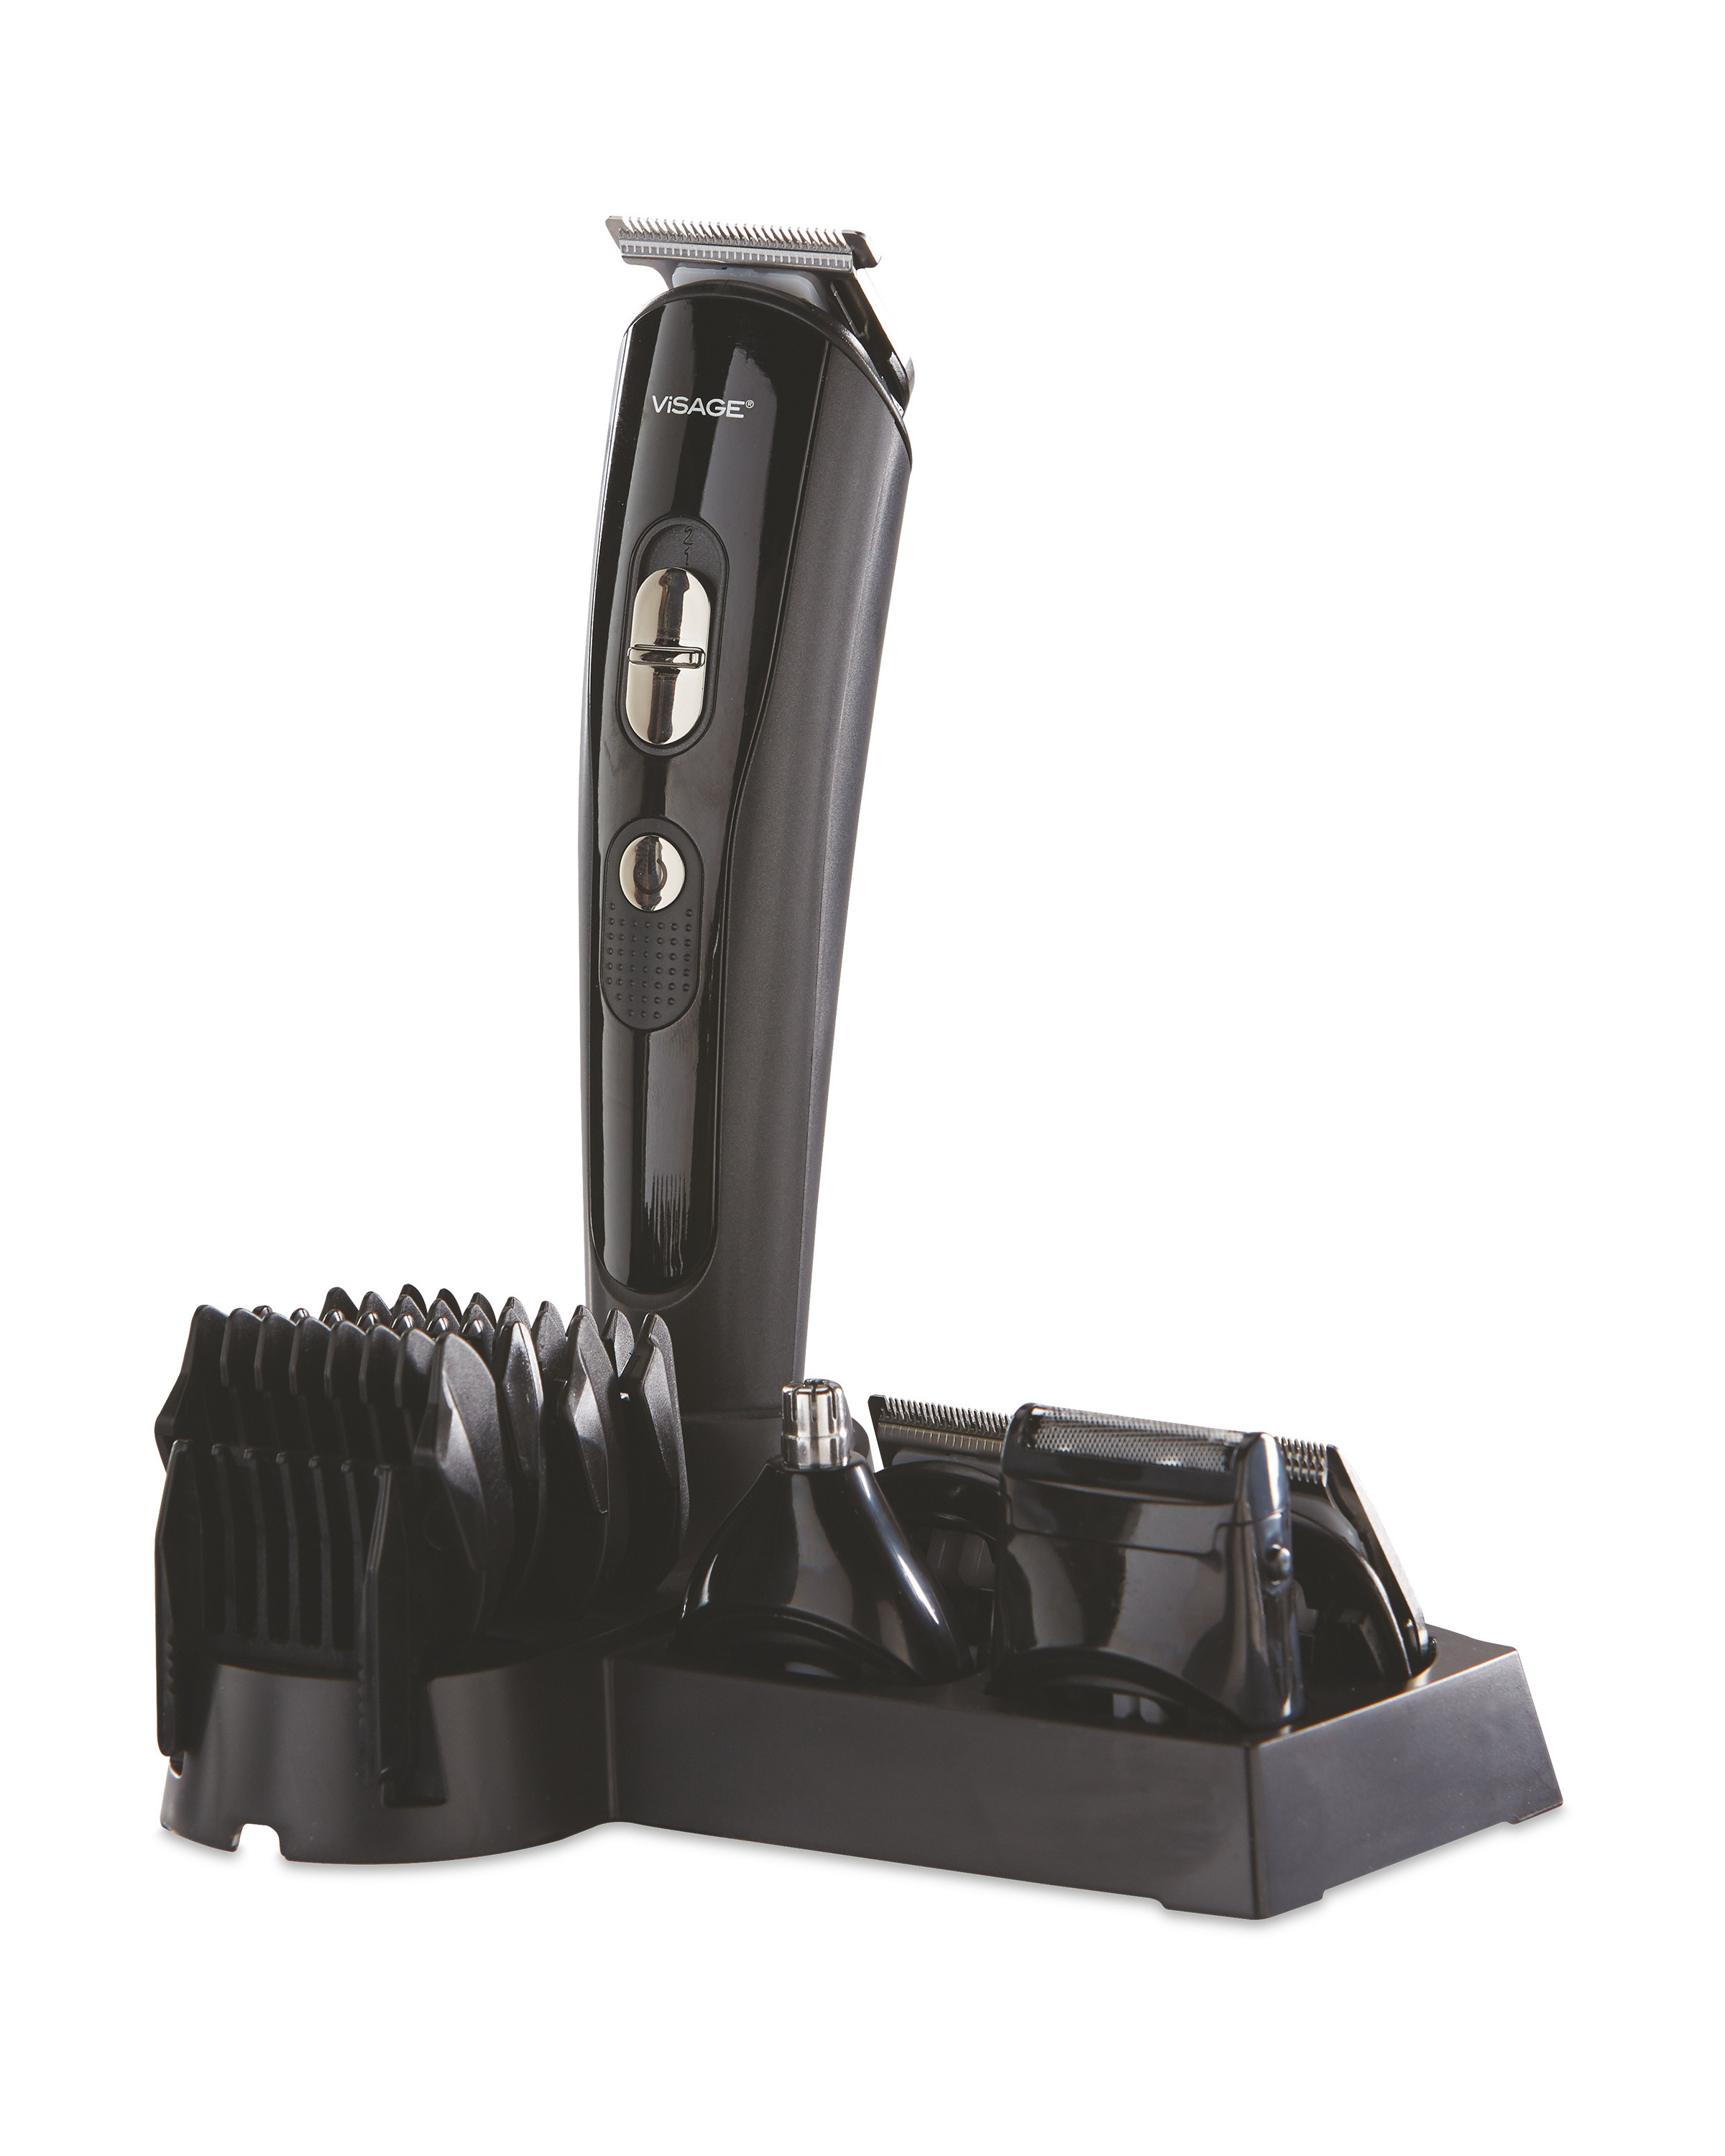 Visage Cordless Grooming Kit Aldi Uk